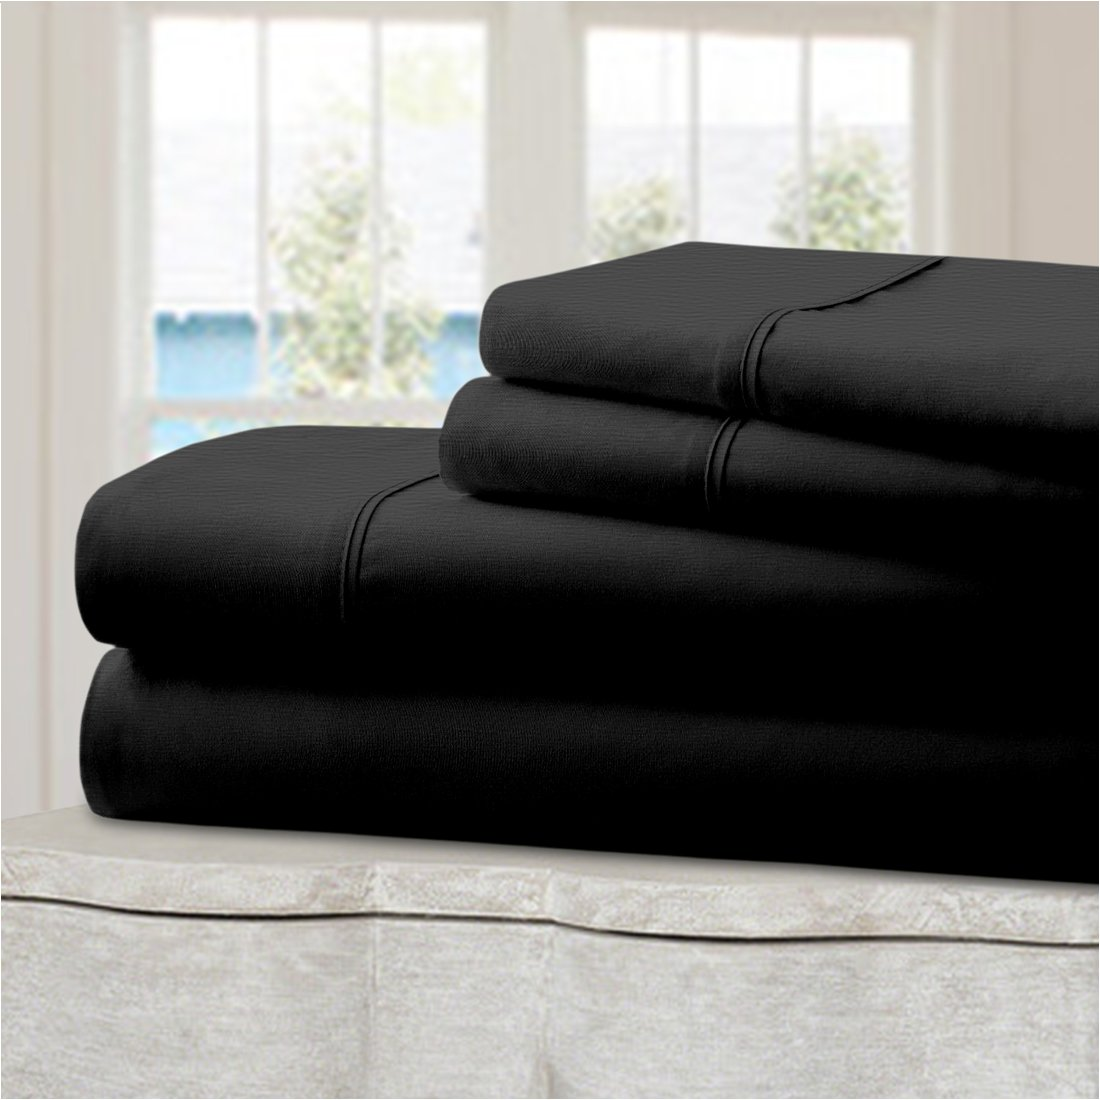 Mellanni 100% Cotton Bed Sheet Set King Black